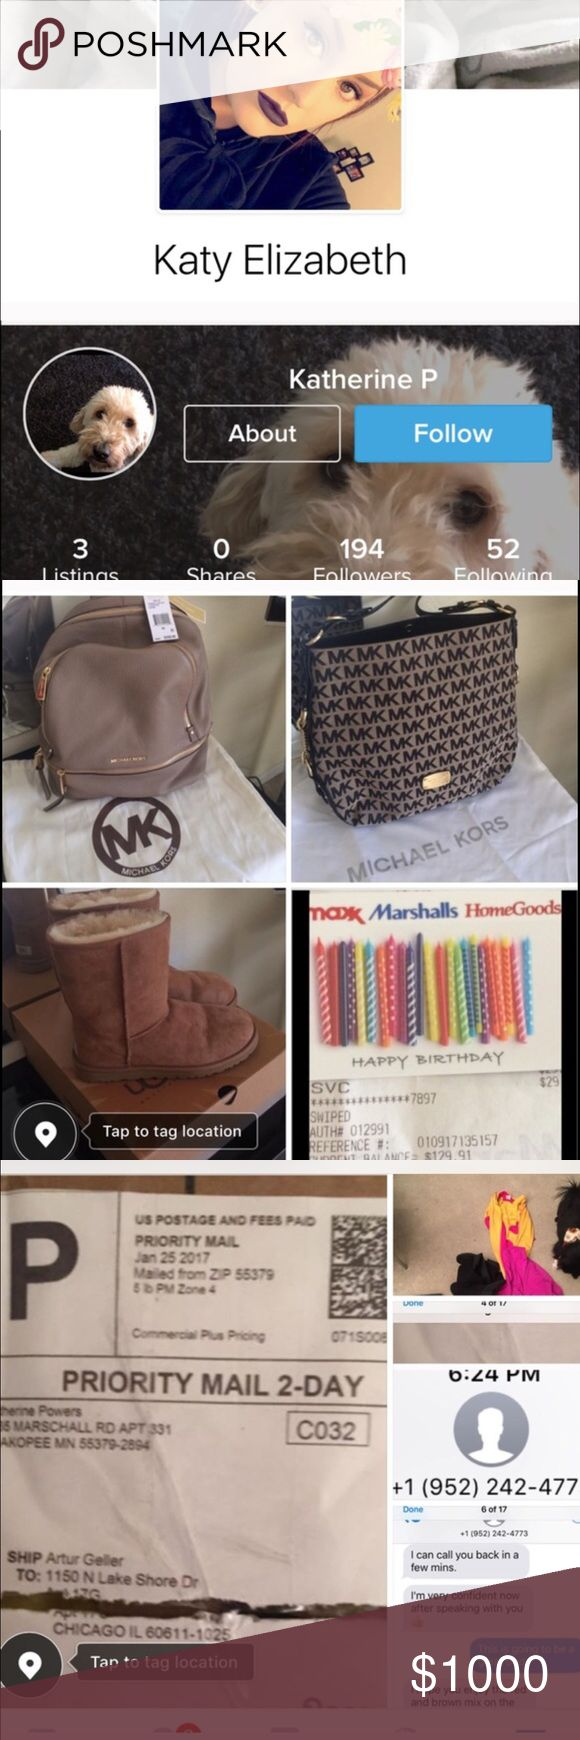 ✔️SCAMMER WORTHLESS PIECE OF💩 I hate worthless SCAMMERS esp a girl with an New baby🙄 hopeful the child doesn't grow up like his NOTHING azz momma scamming ppl she supposedly sent an 2,000 Lou bag for 2 MK one pair of UGG and and home goods gift card!... she doesn't even have a home😂🙄 but I've never heard of such TRADE does that make sense to any of you all 😂😜🤔 that last pic is wat her OLD friend had to say about her💯 Louis Vuitton Bags Crossbody Bags